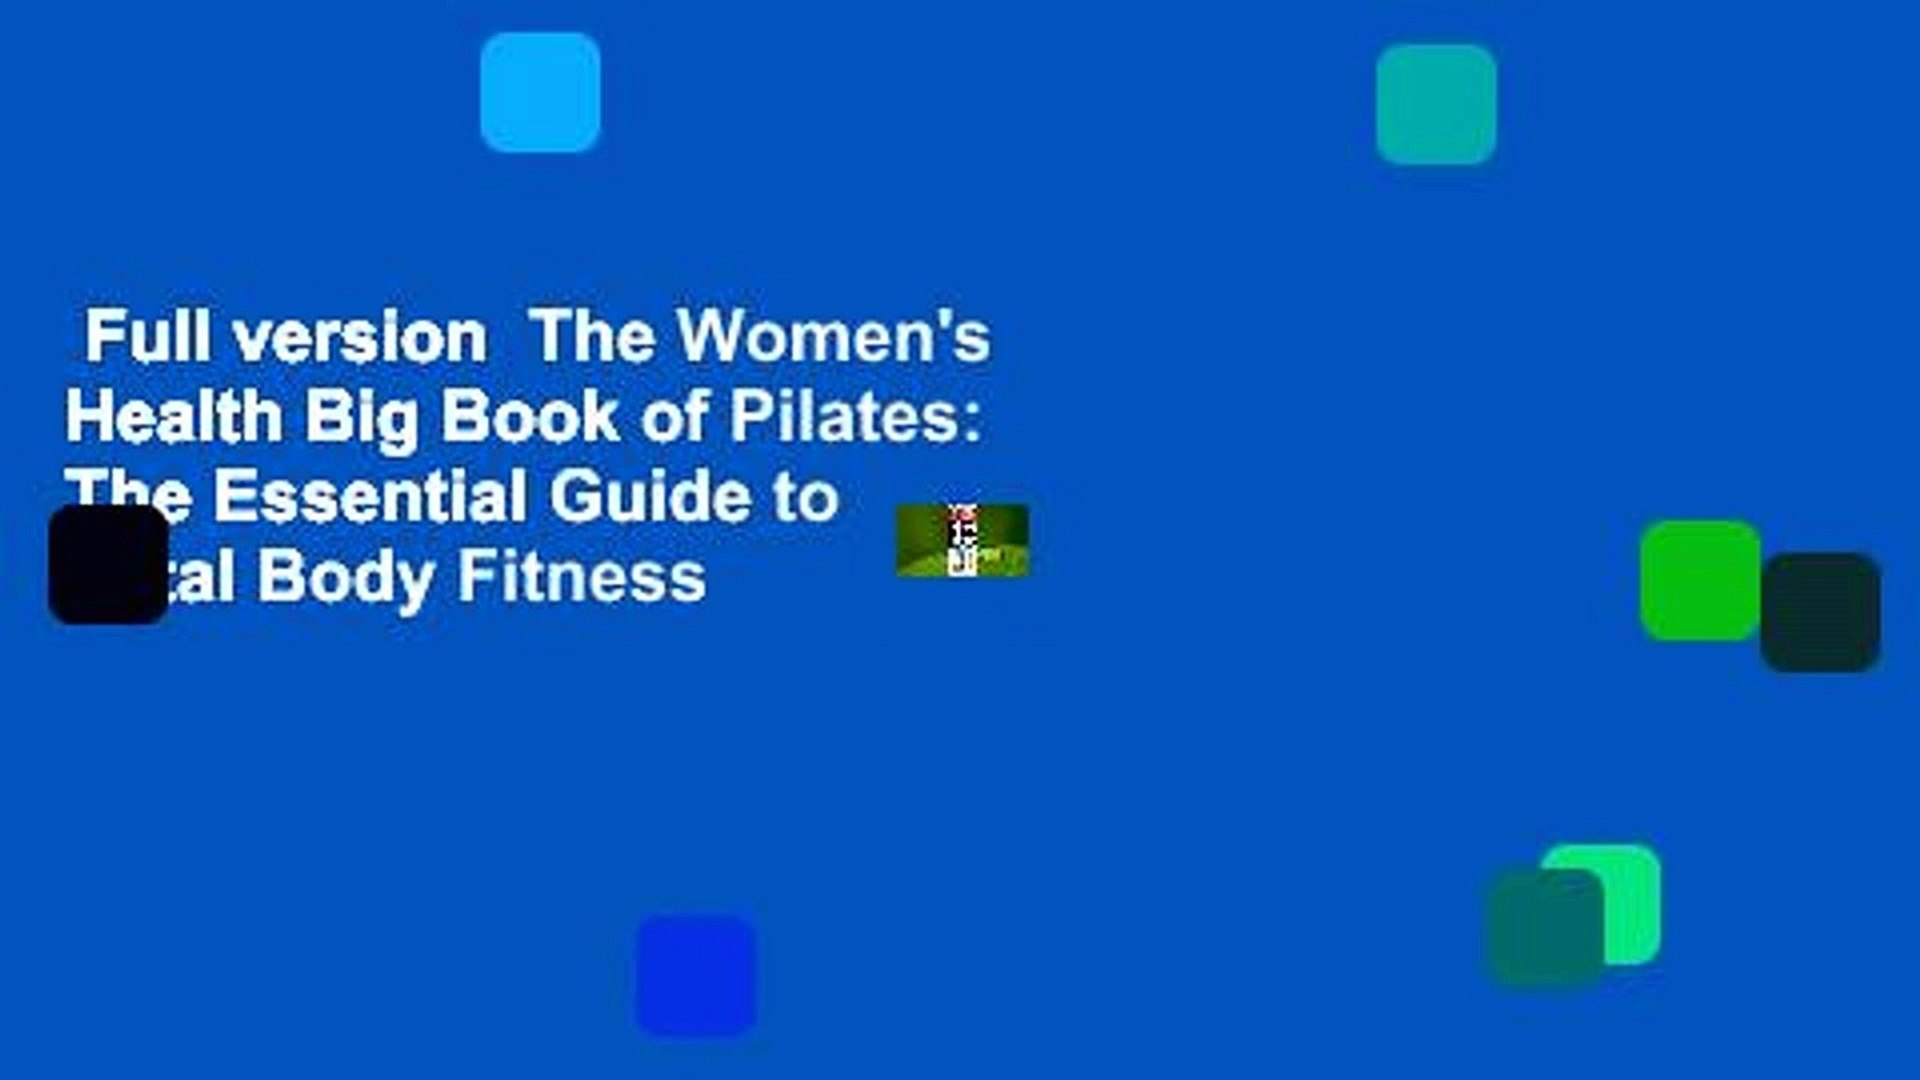 Full version  The Women's Health Big Book of Pilates: The Essential Guide to Total Body Fitness